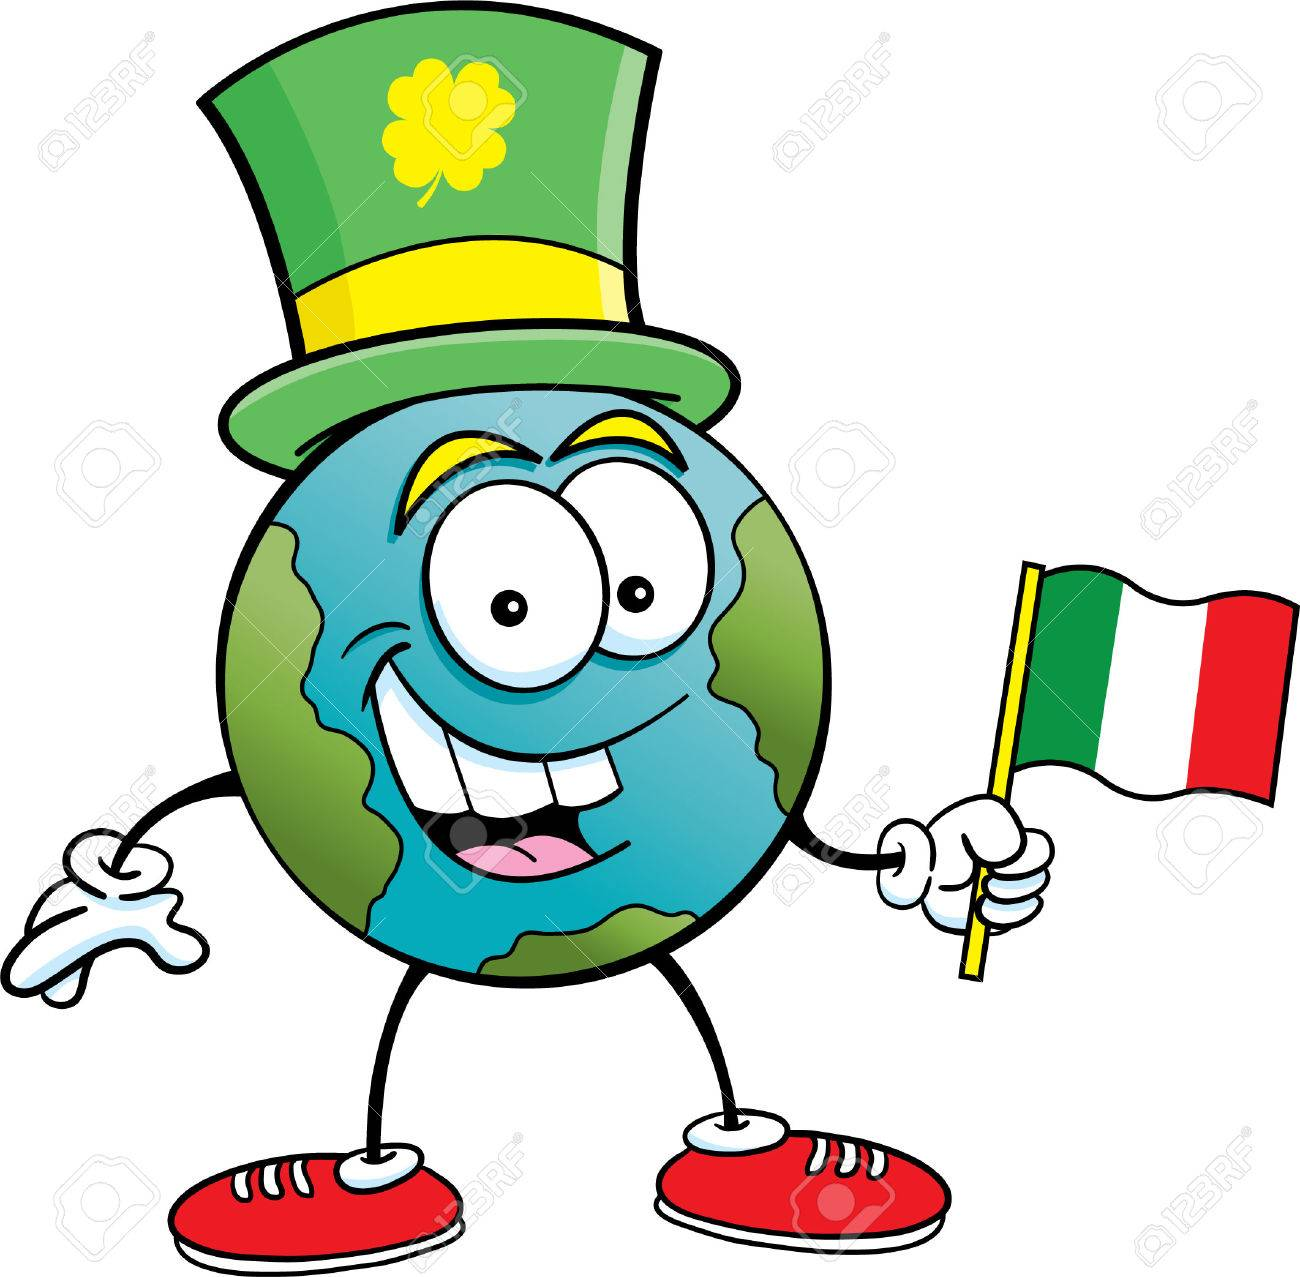 cartoon illustration of the earth holding an irish flag and